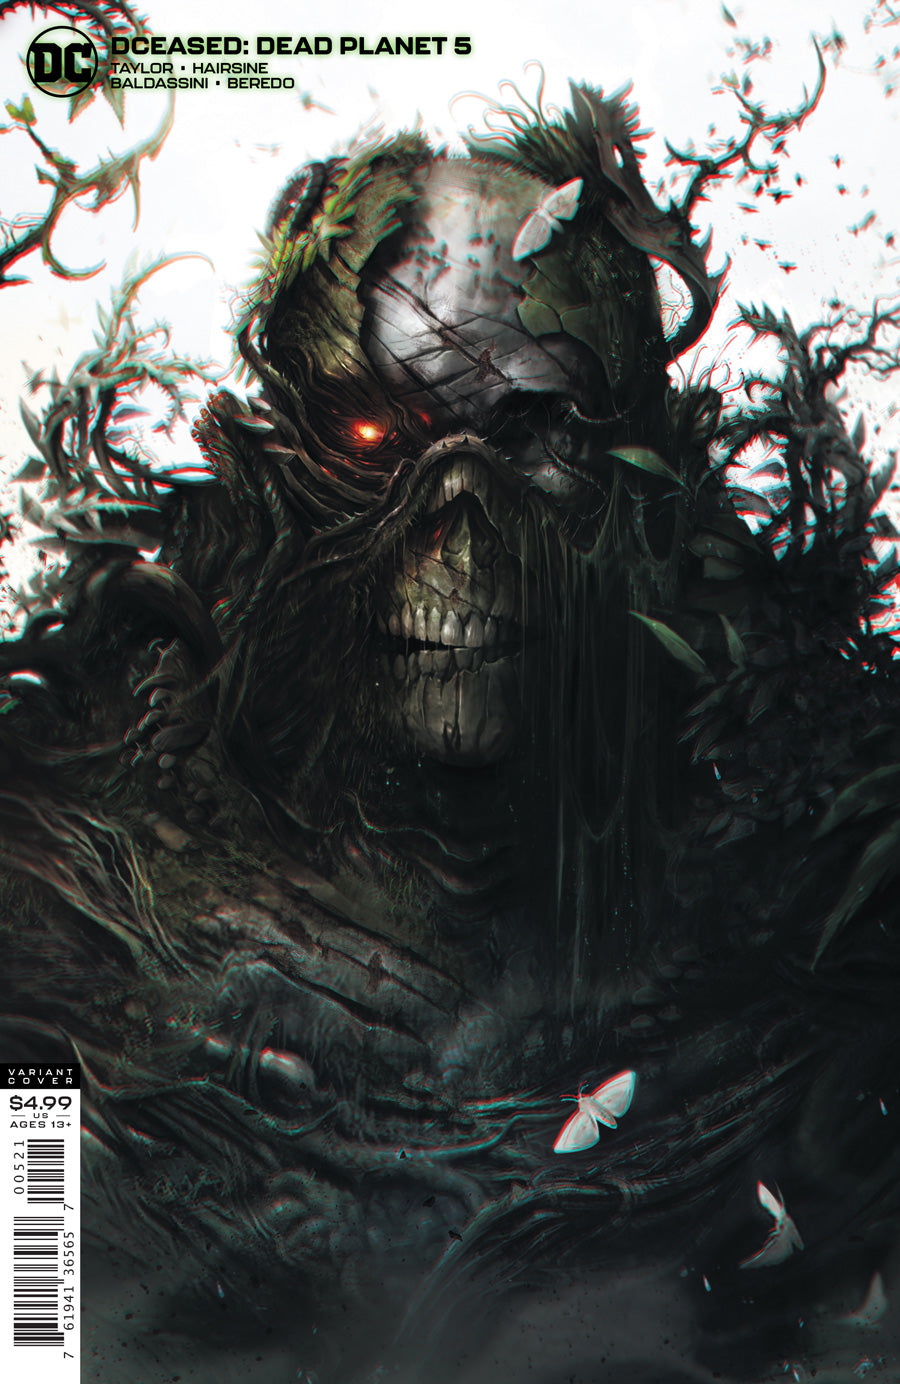 DCEASED DEAD PLANET #5 (OF 7) CVR B FRANCESCO MATTINA CARD STOCK VAR